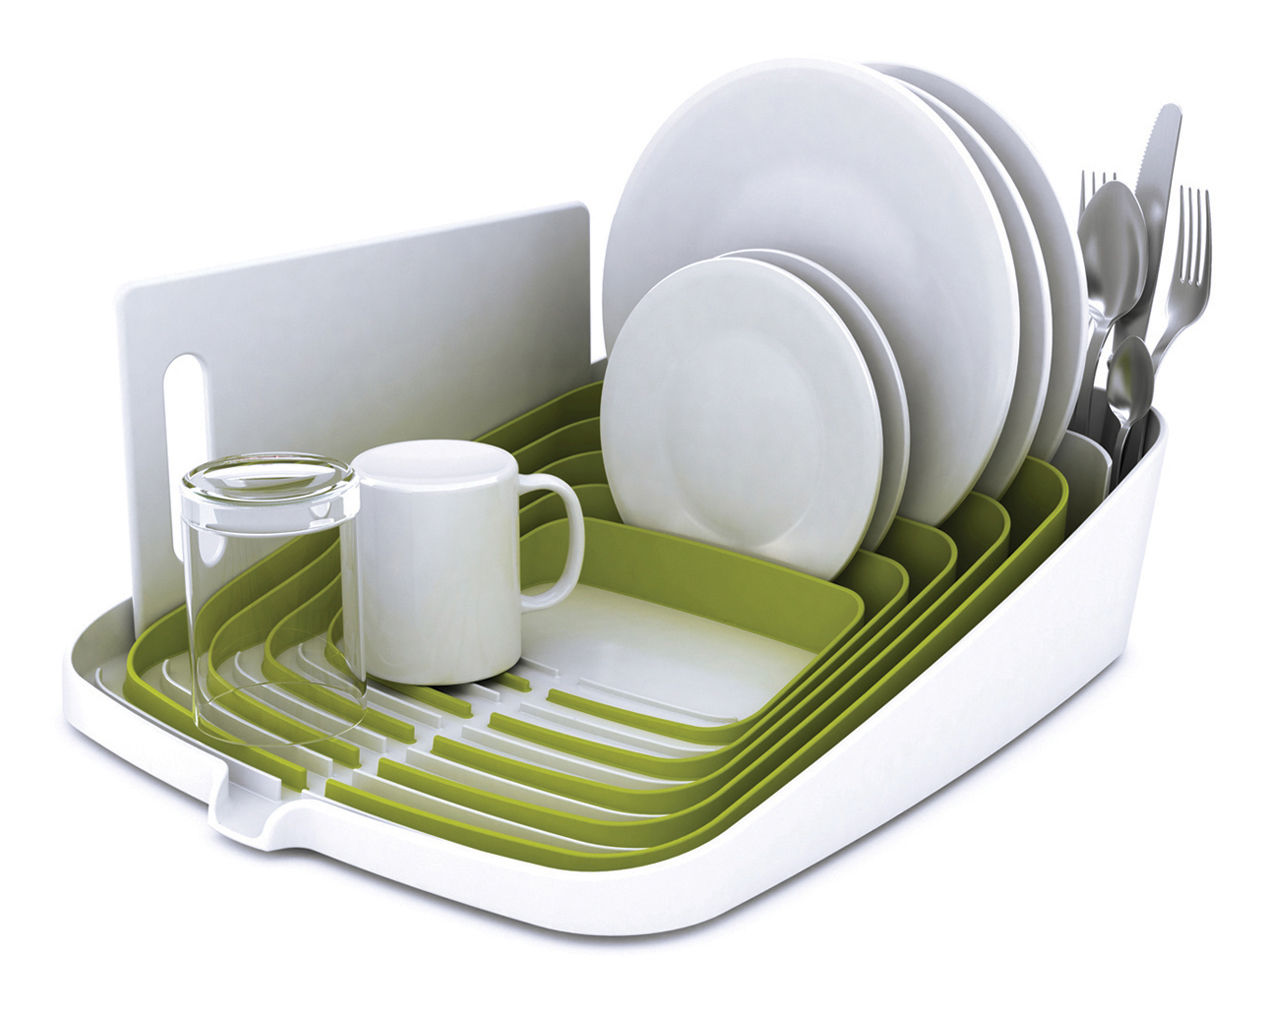 arena draining rack dish drainer green white by joseph. Black Bedroom Furniture Sets. Home Design Ideas